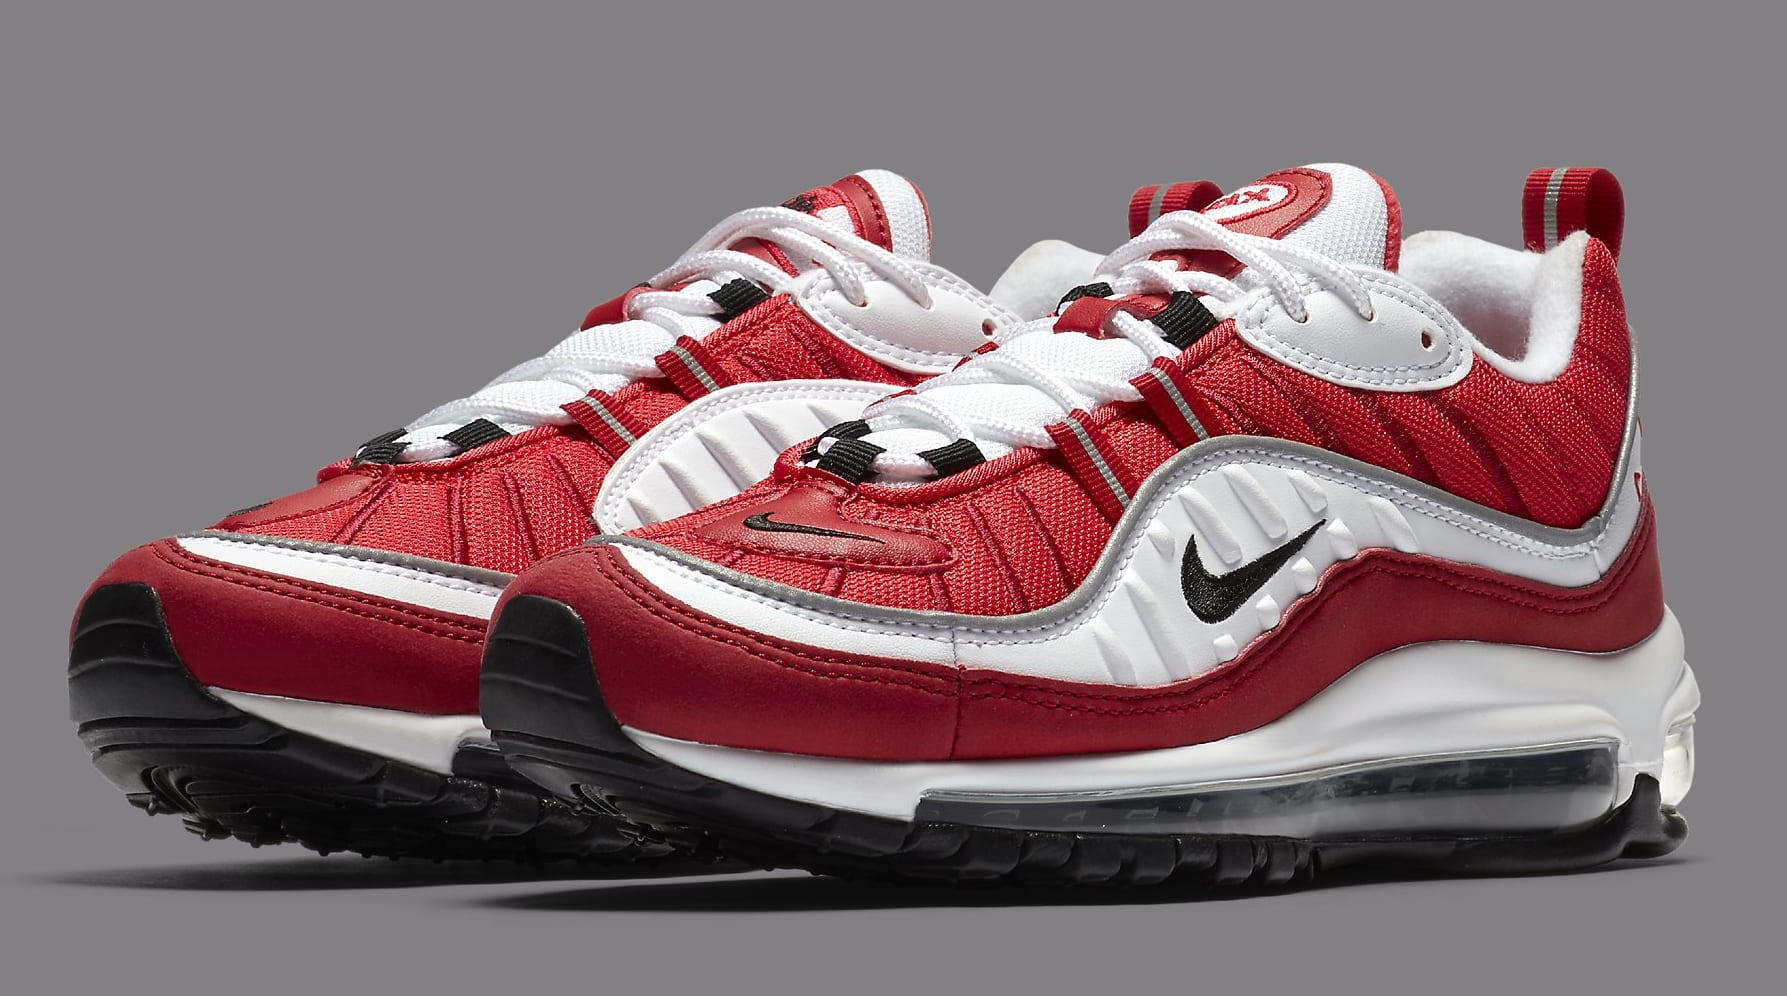 Nike W Real Air Max 98 Gym outlets Red AH6799 101 Valentines Day Airmax Sneakers